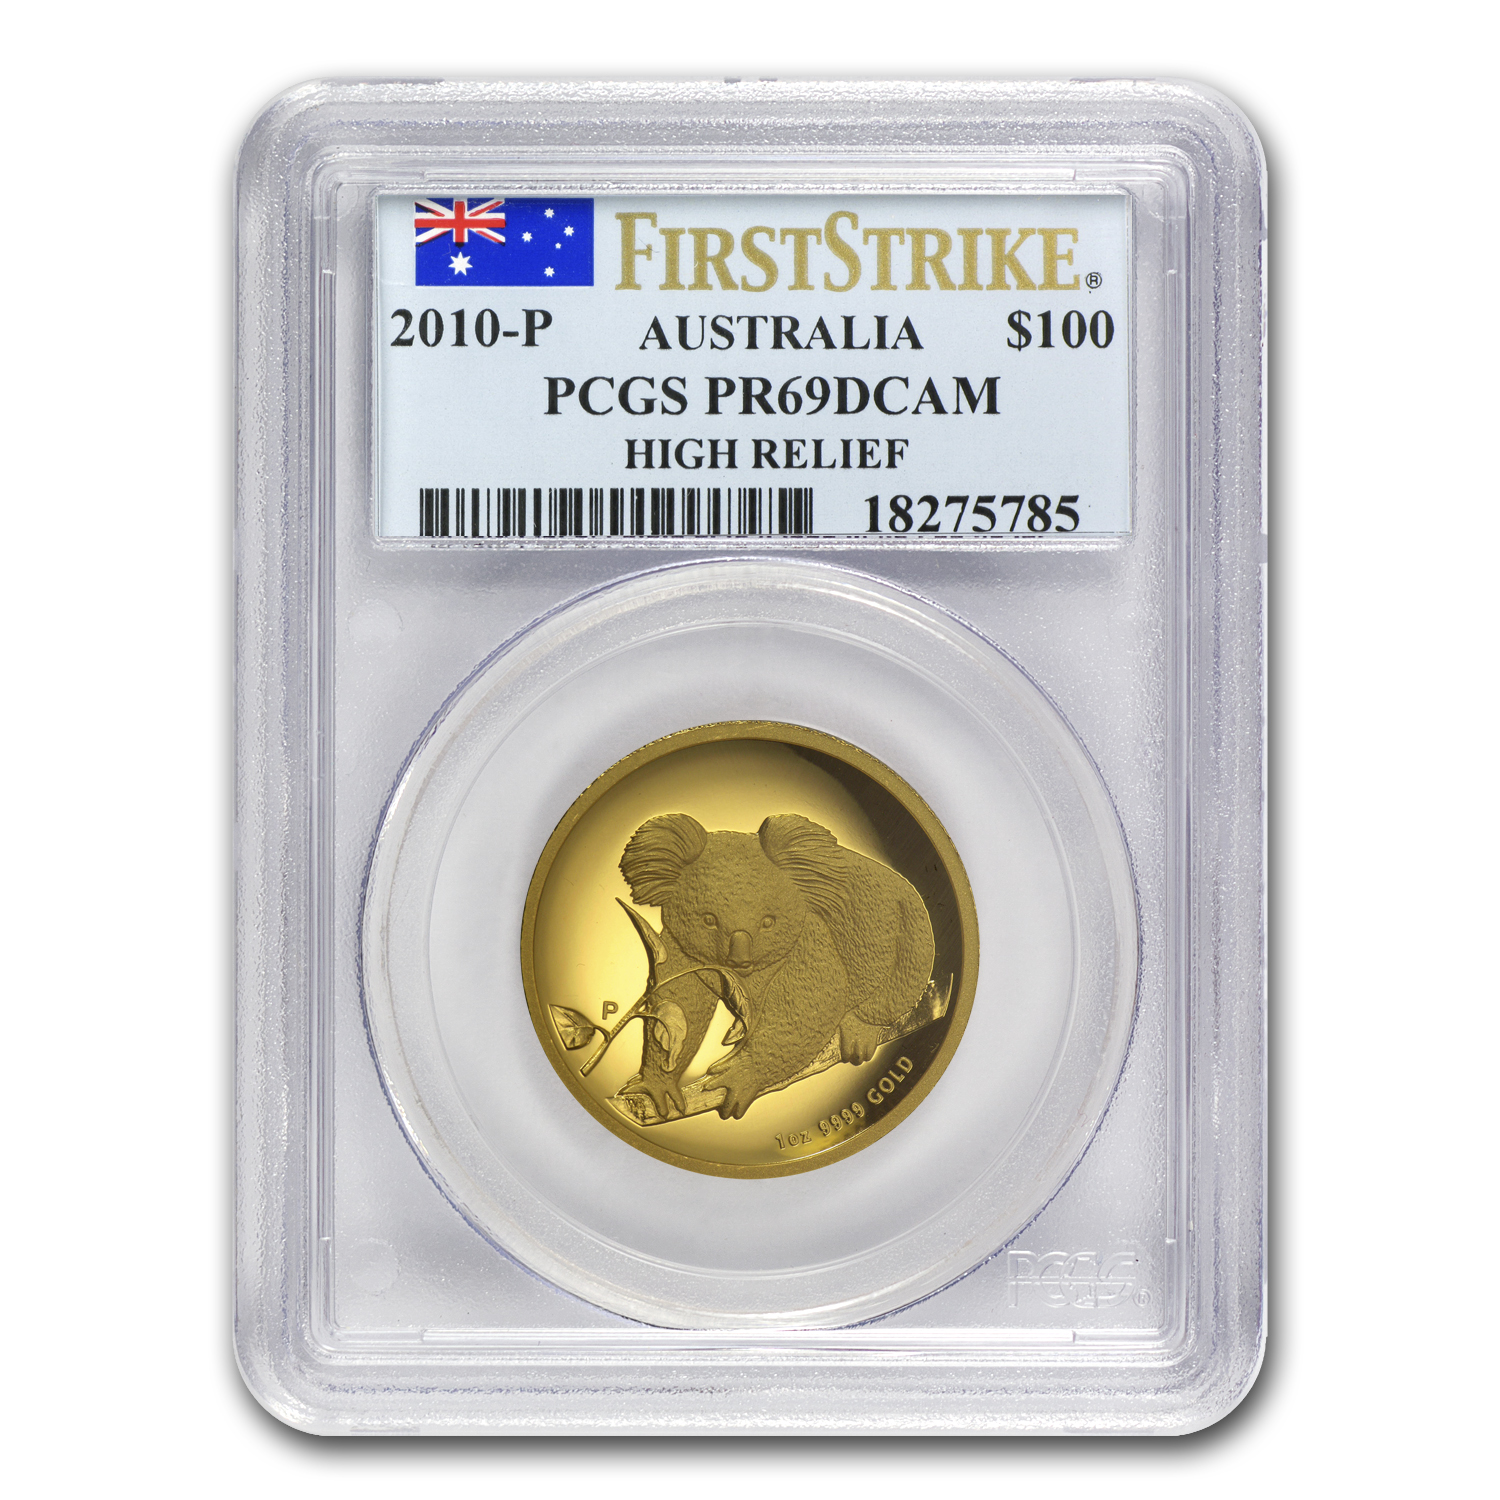 2010-P Australia 1 oz Gold Koala PR-69 PCGS (FS, High Relief)